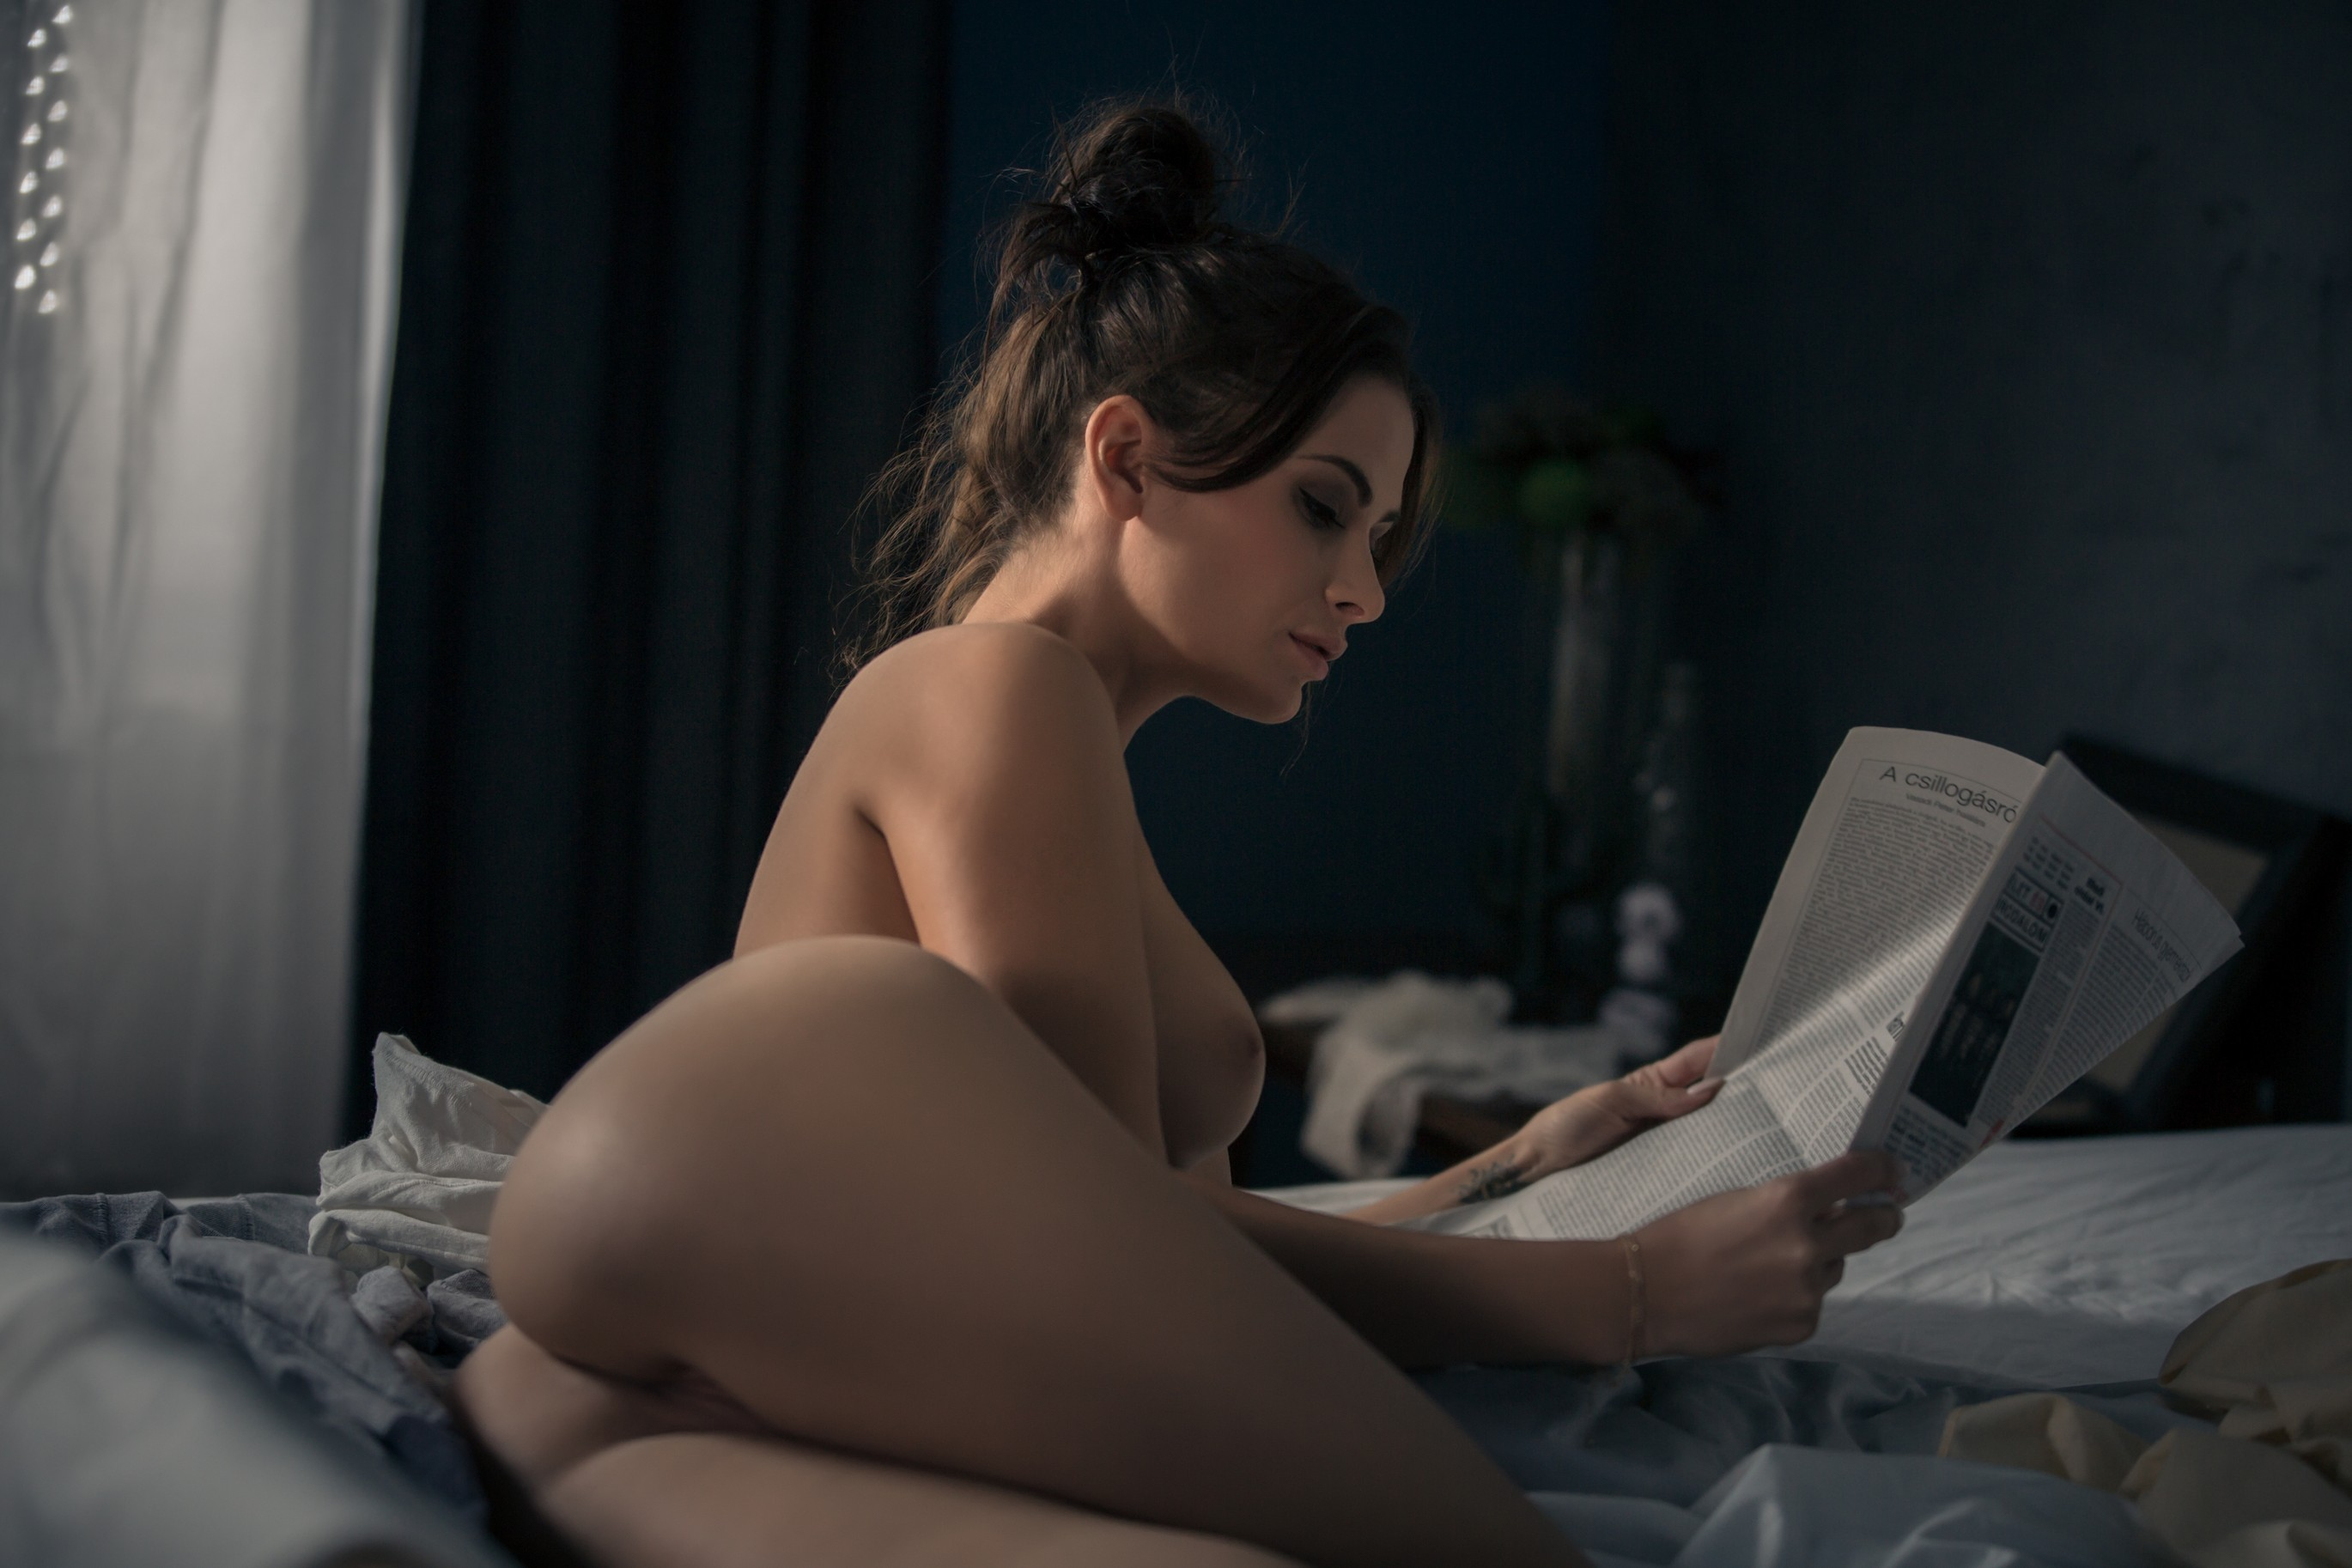 Nude Girl Reading